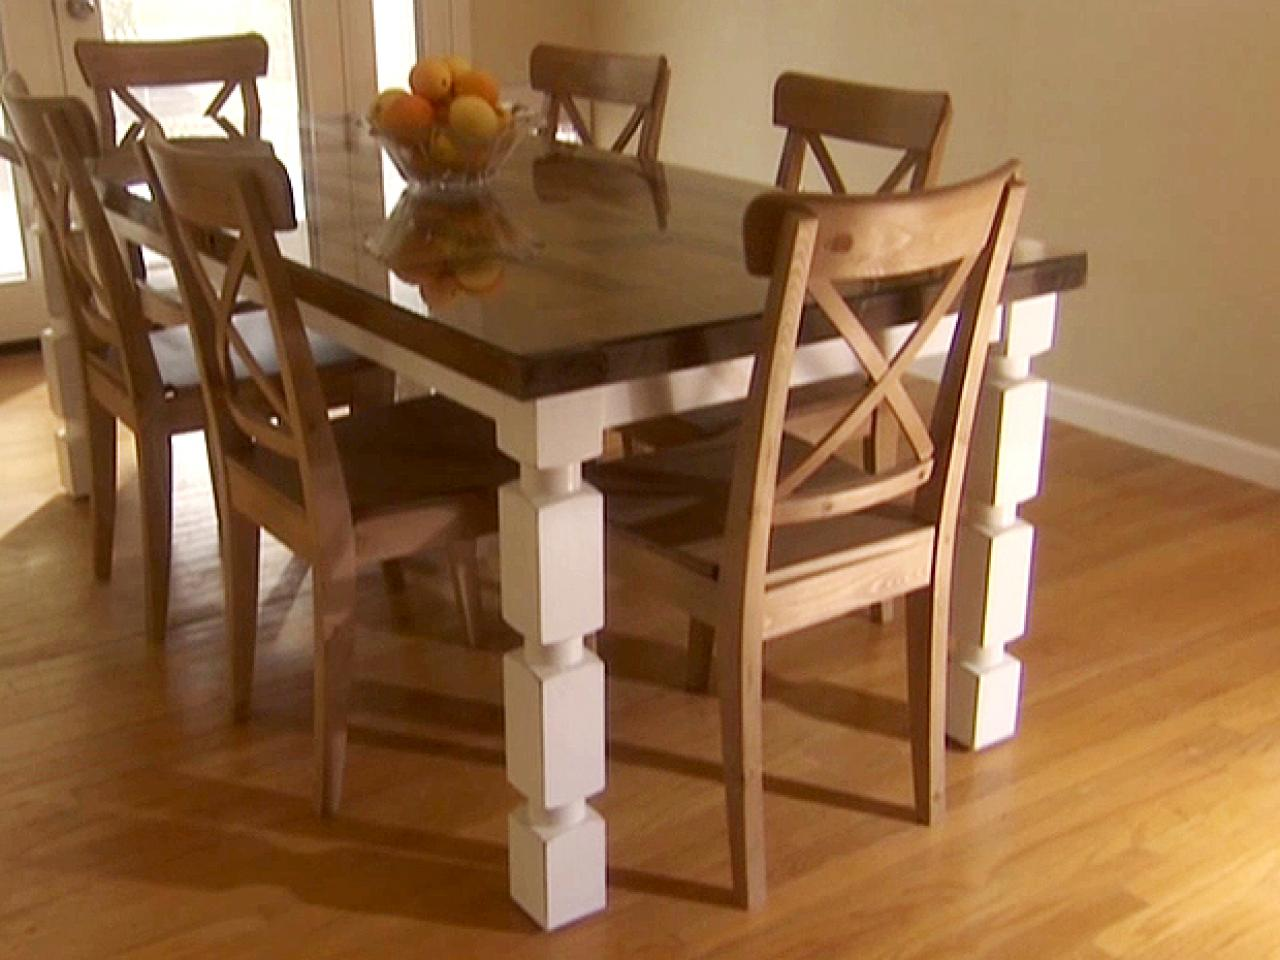 https://hgtvhome.sndimg.com/content/dam/images/hgtv/fullset/2010/5/7/0/HDSWT803_Table-After_s4x3.jpg.rend.hgtvcom.1280.960.suffix/1400951671579.jpeg